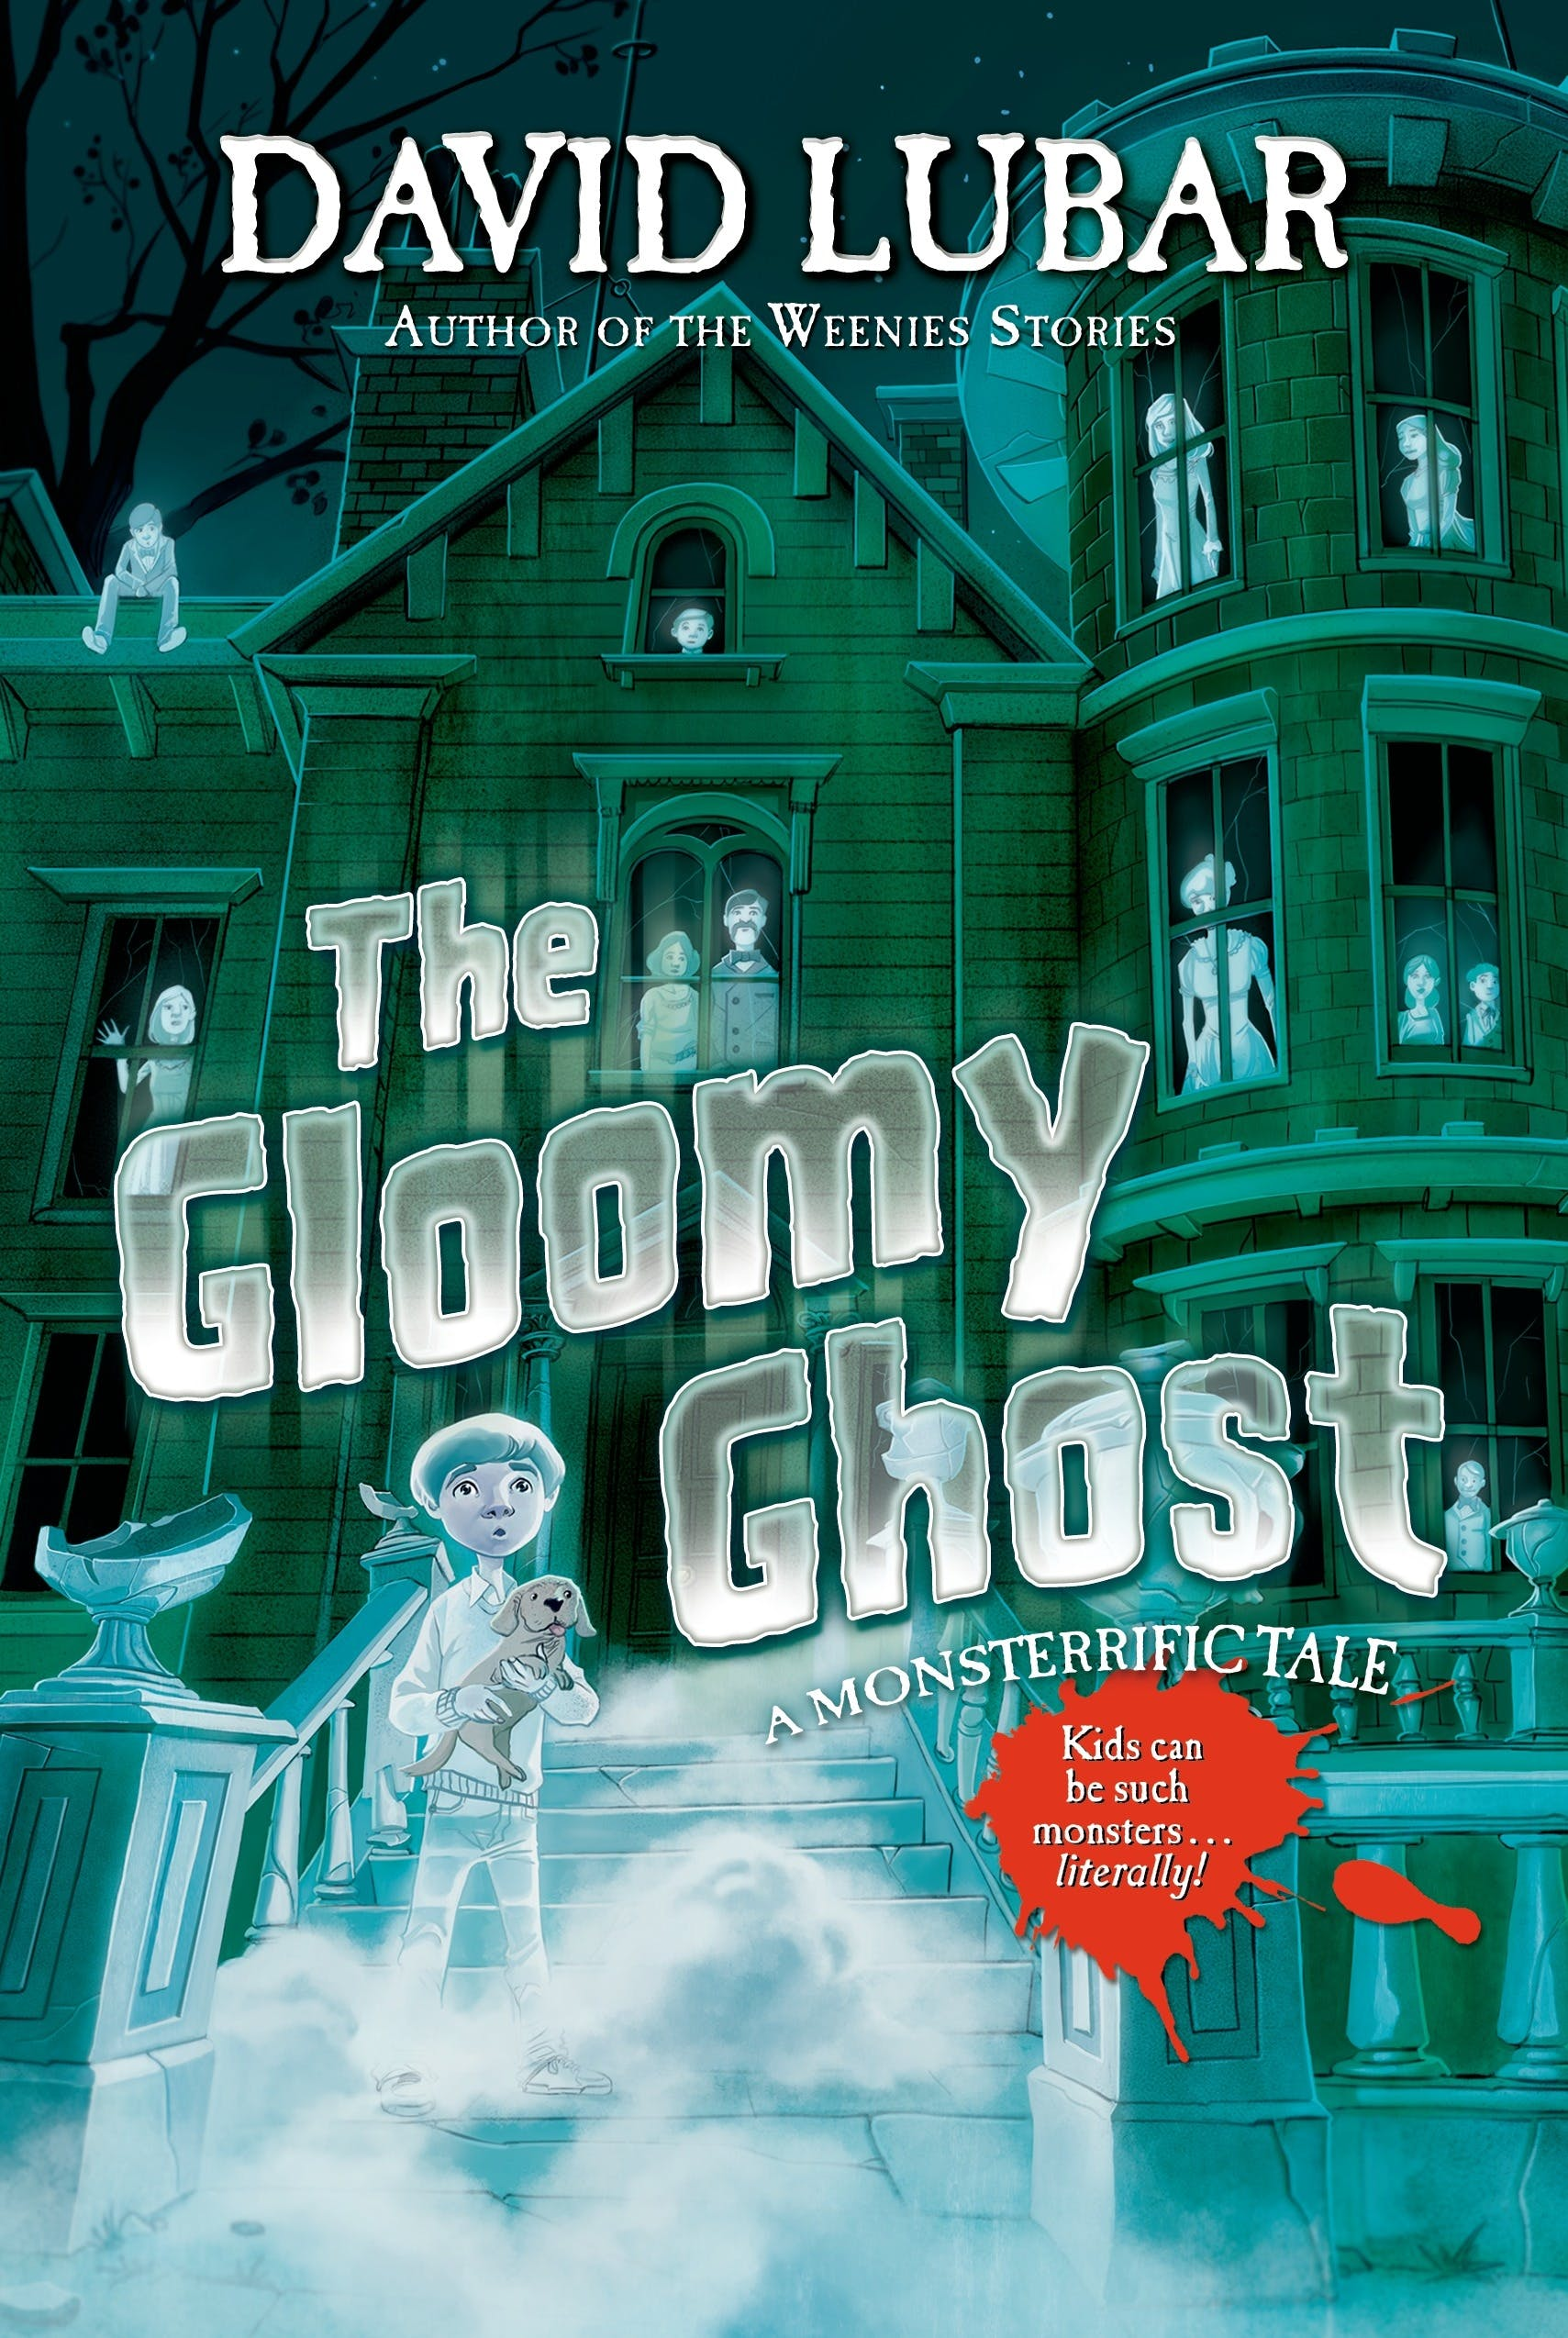 Image of The Gloomy Ghost